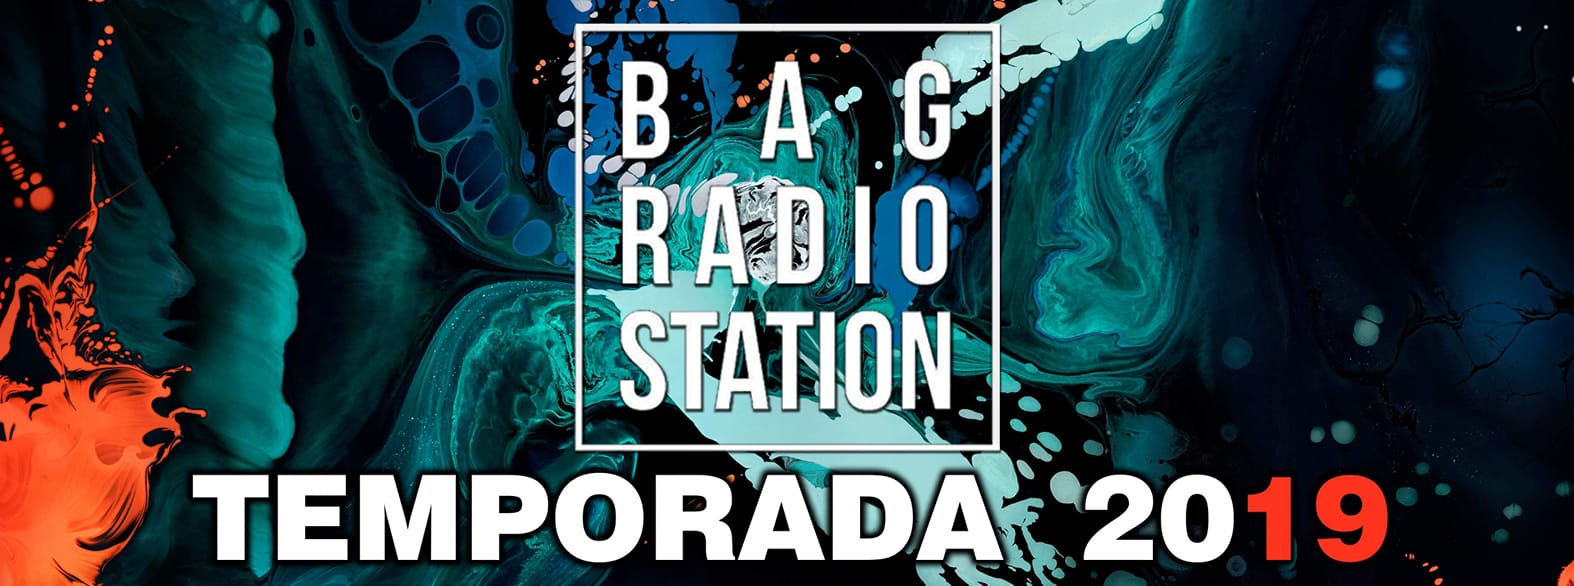 BAG RADIO STATION